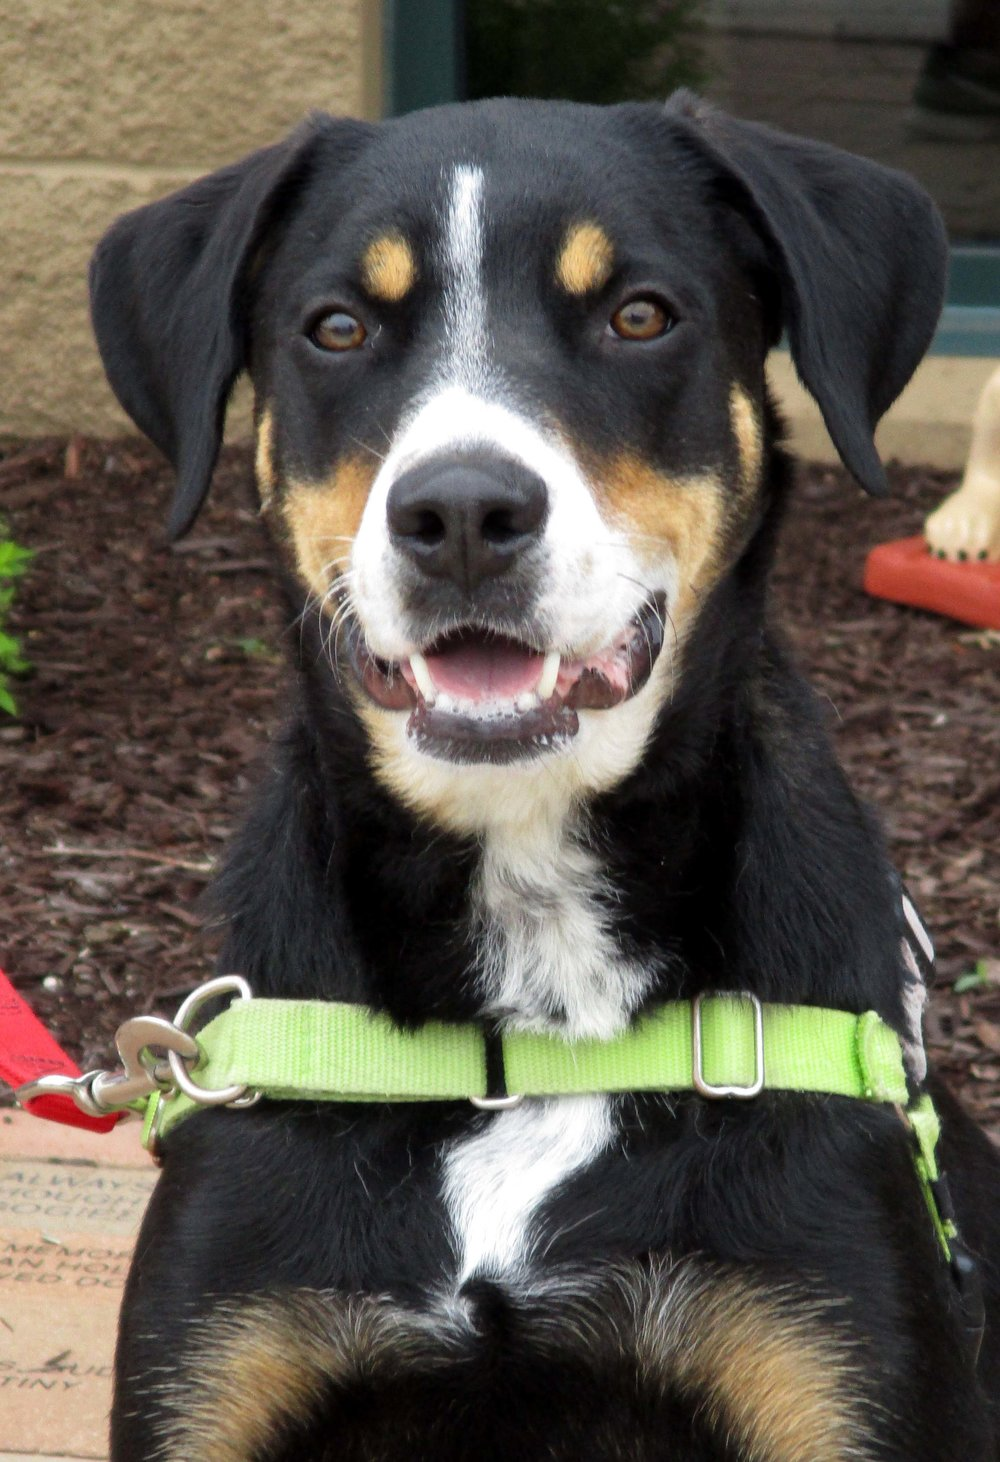 Judge is almost 2 years old and he is a Great Swiss Mountain Dog Mix. He would do best being the only pet in the home. Judge is very sweet and enjoys playing!